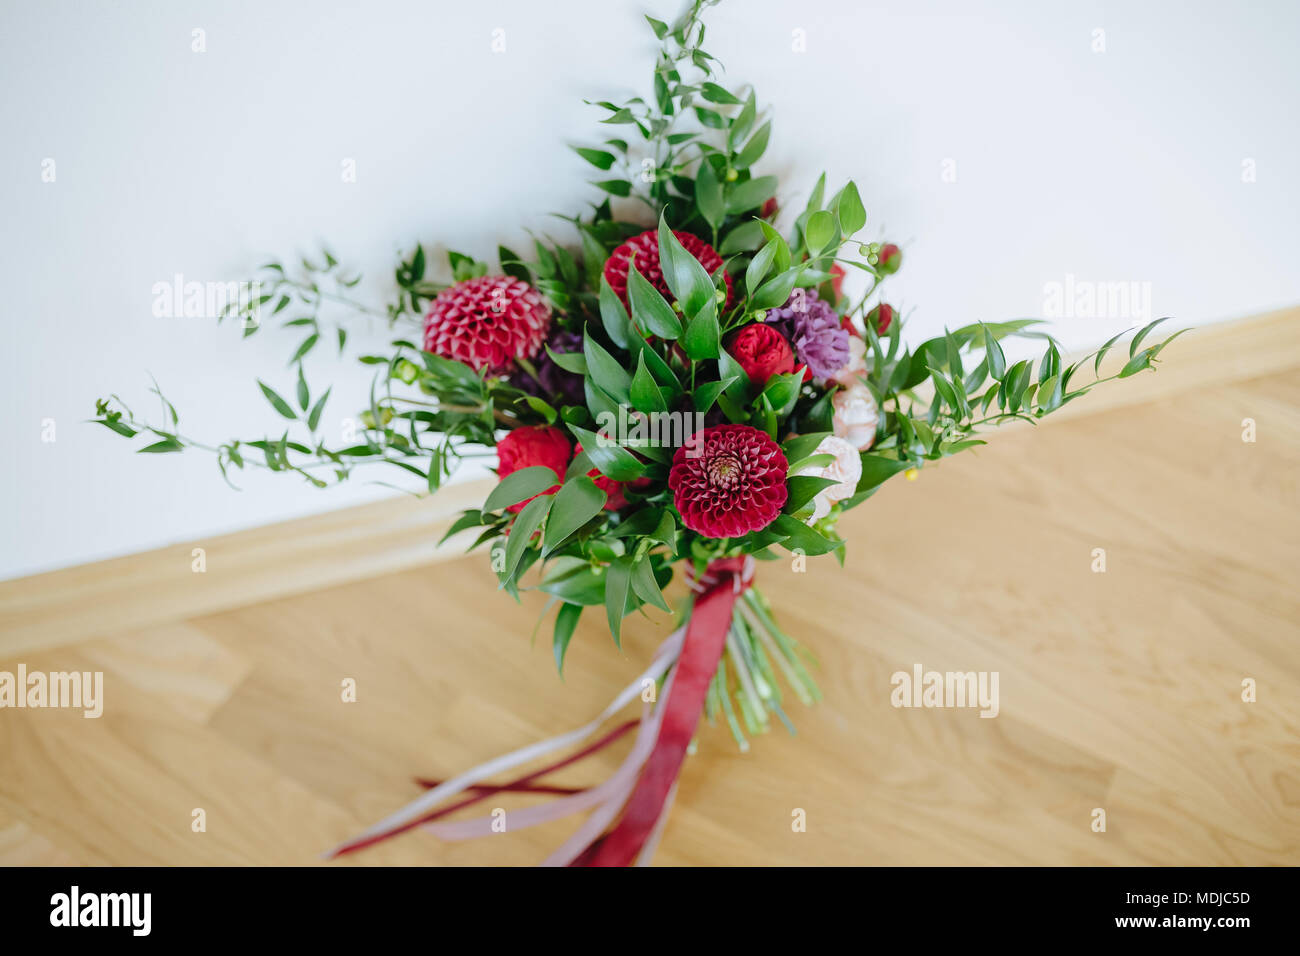 Wedding The Bride S Bouquet Rustic Bouquet Of Burgundy And Eucalyptus Flowers Wedding Stock Photo Alamy